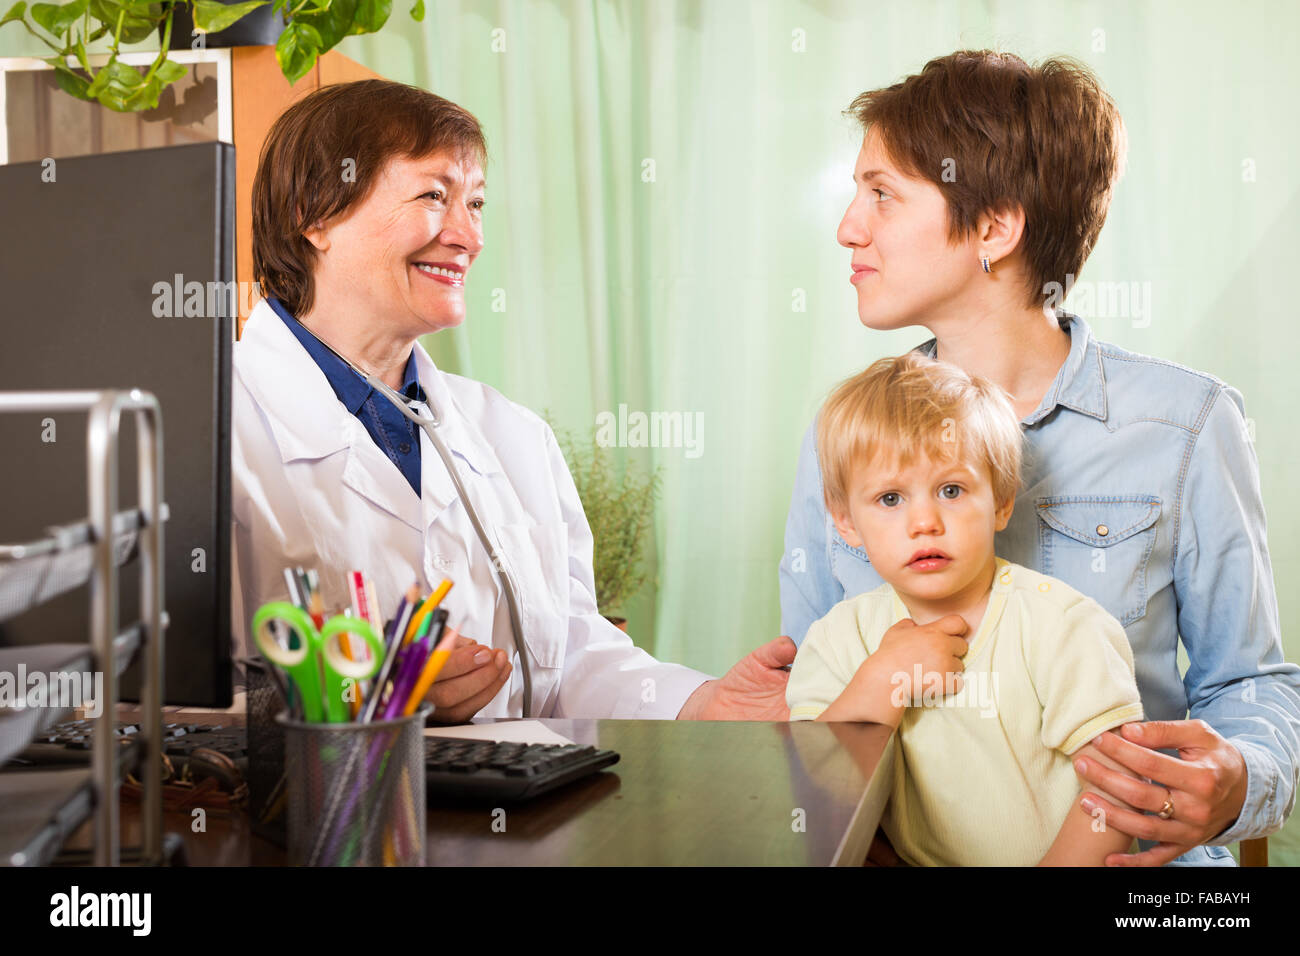 mother with baby talking with friendly pediatrician doctor at clinic - Stock Image